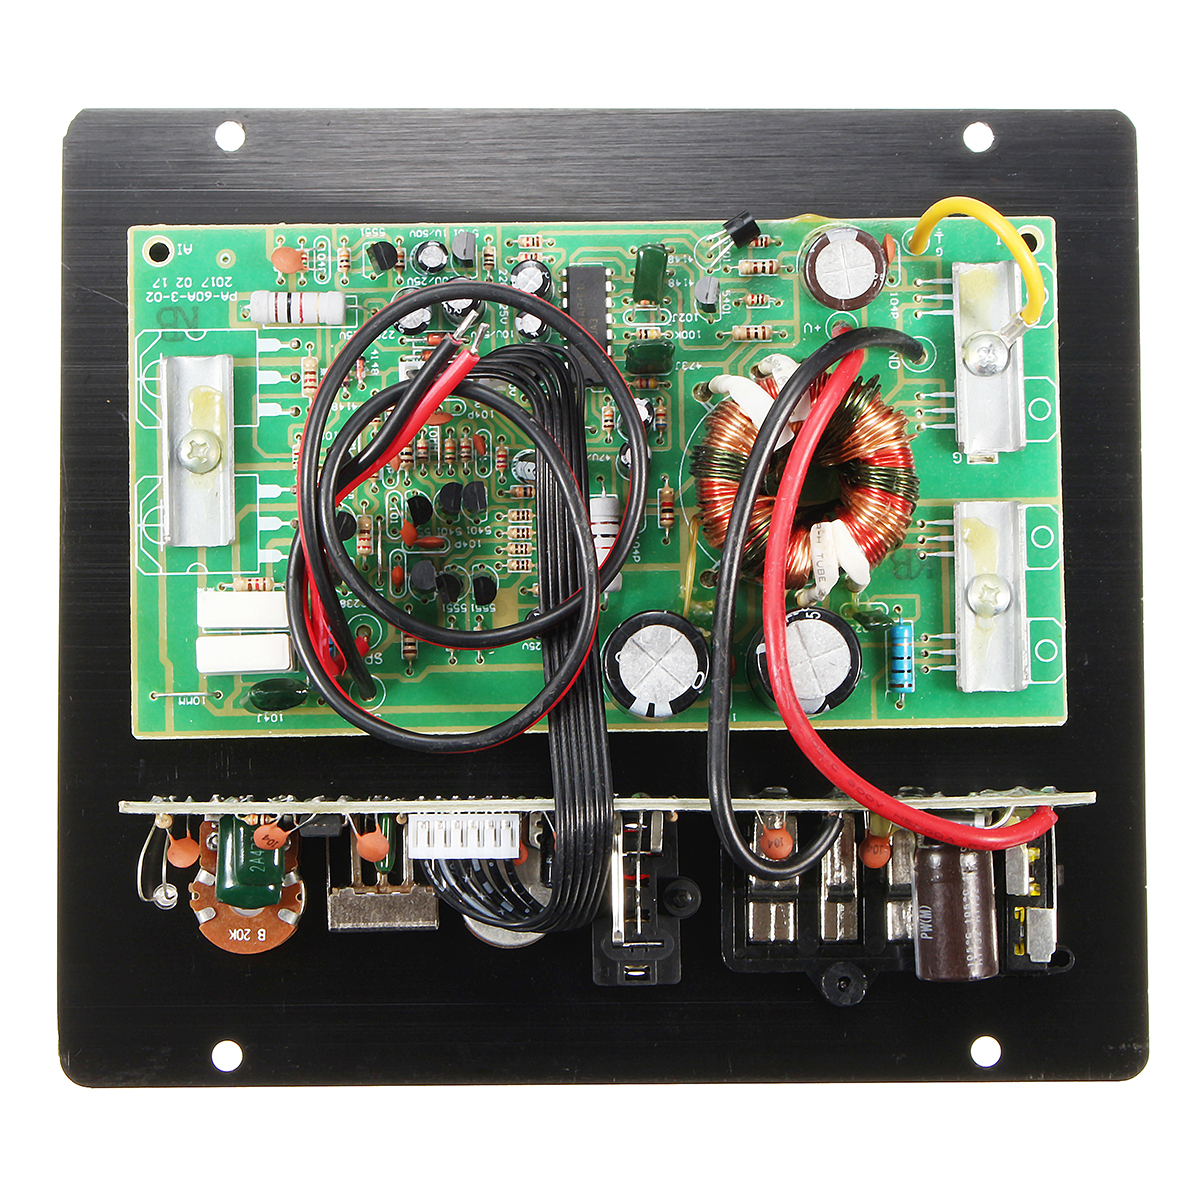 Other Electronics 12v 600w High Power Audio Momo 700w Amplifier With 2sc5200 2sa1943 Mono Car Board